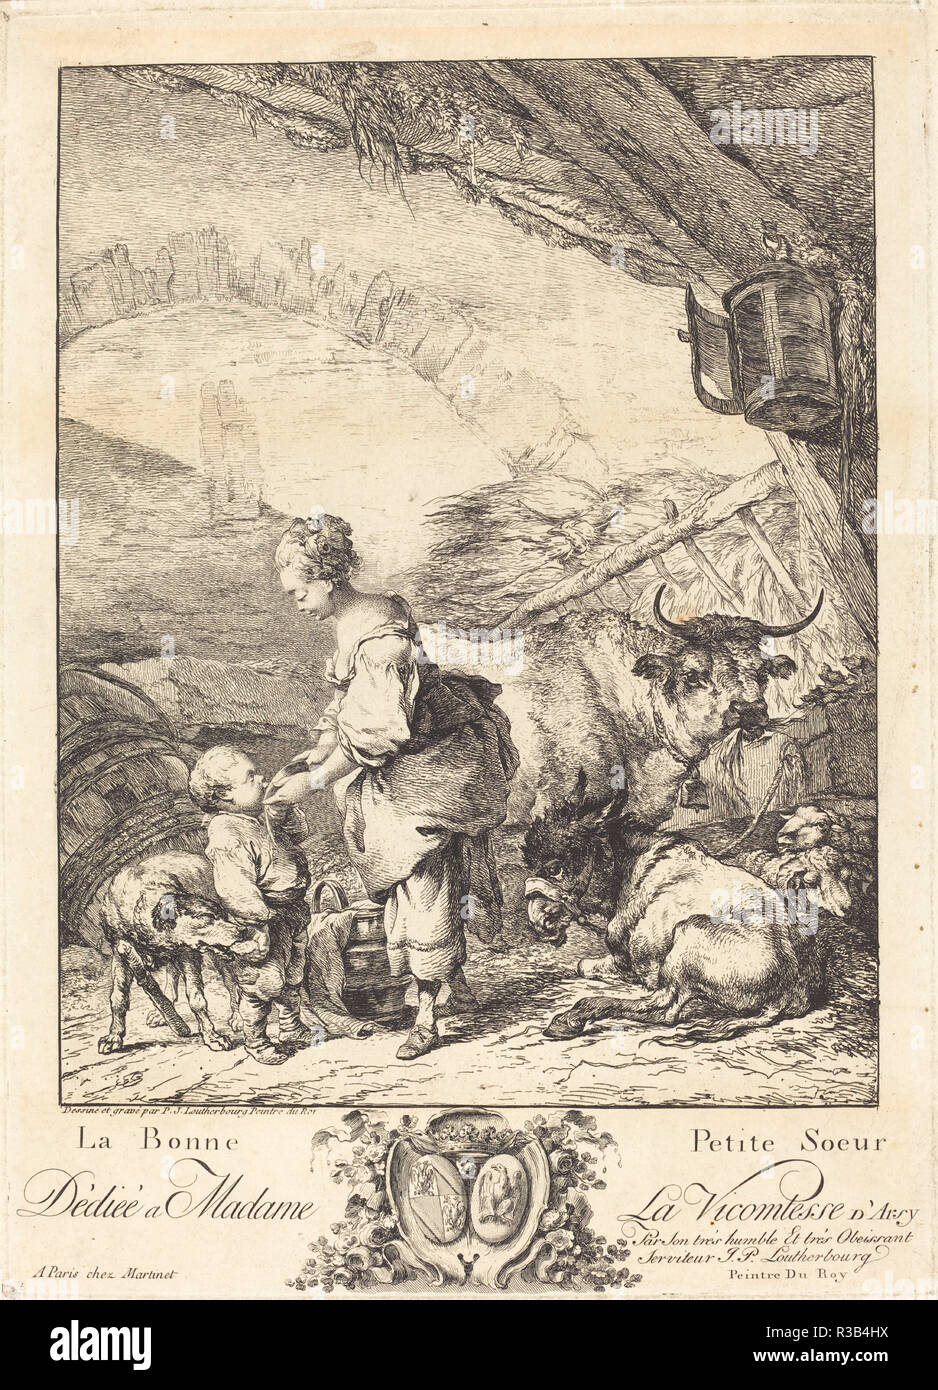 La bonne petite soeur. Medium: etching. Museum: National Gallery of Art, Washington DC. Author: Philippe Jacques de Loutherbourg II. Philippe Jacques De Loutherbourg. - Stock Image